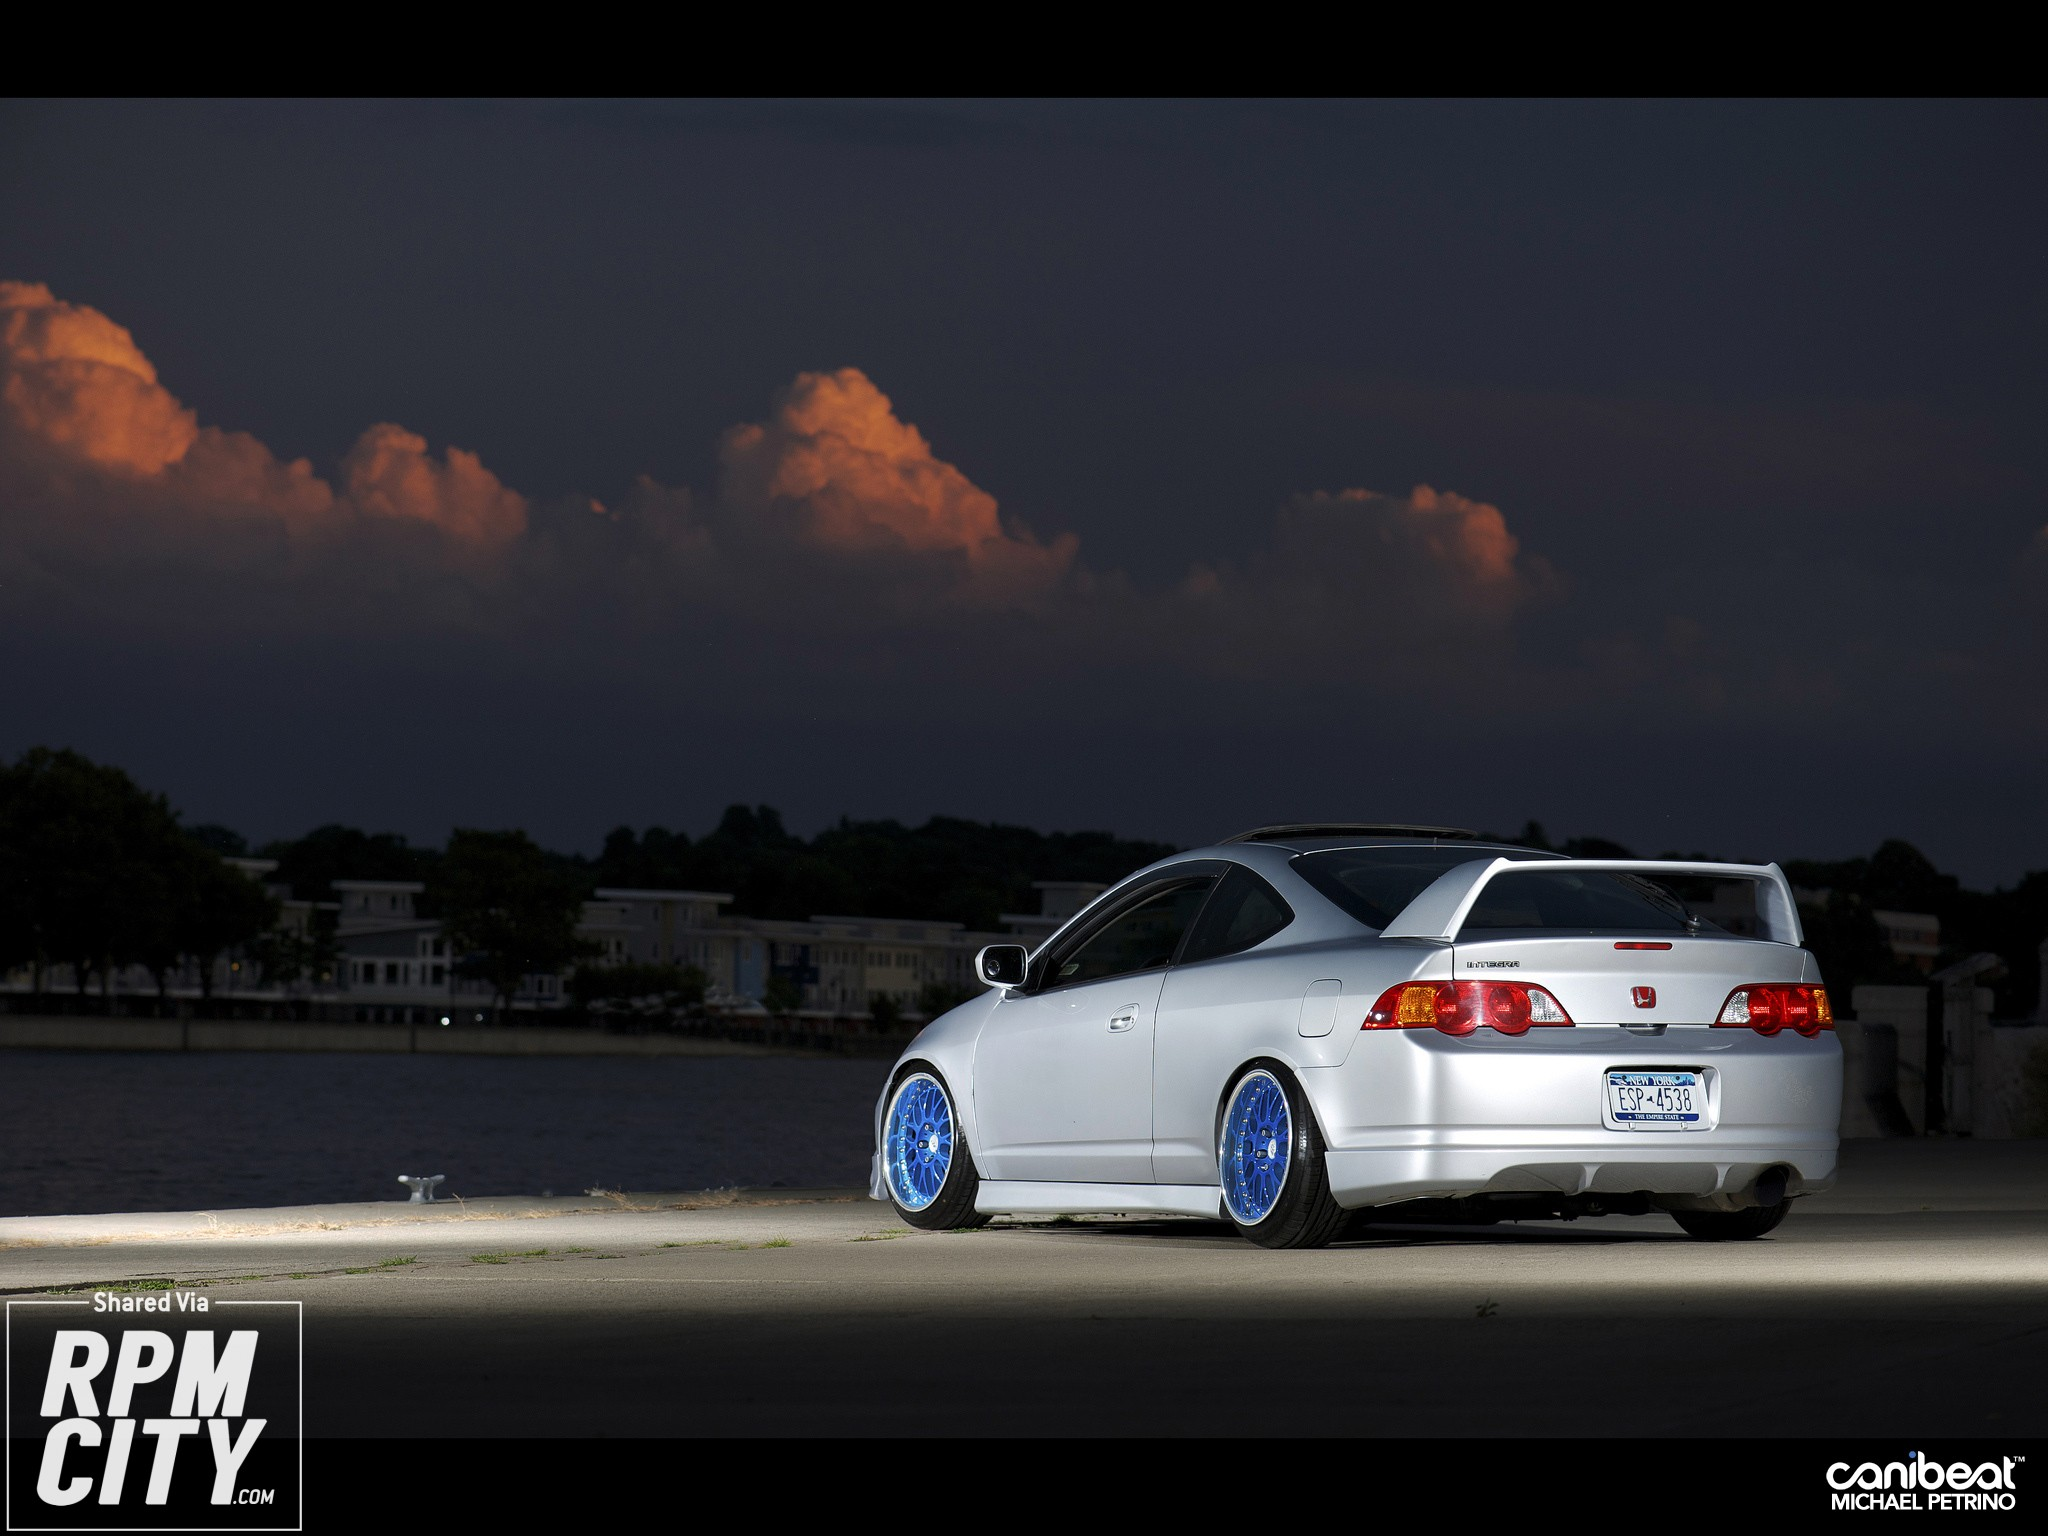 Rc Drift Cars Wallpaper How Many Quot Likes Quot For This Hellaflush Rsx Rpm City